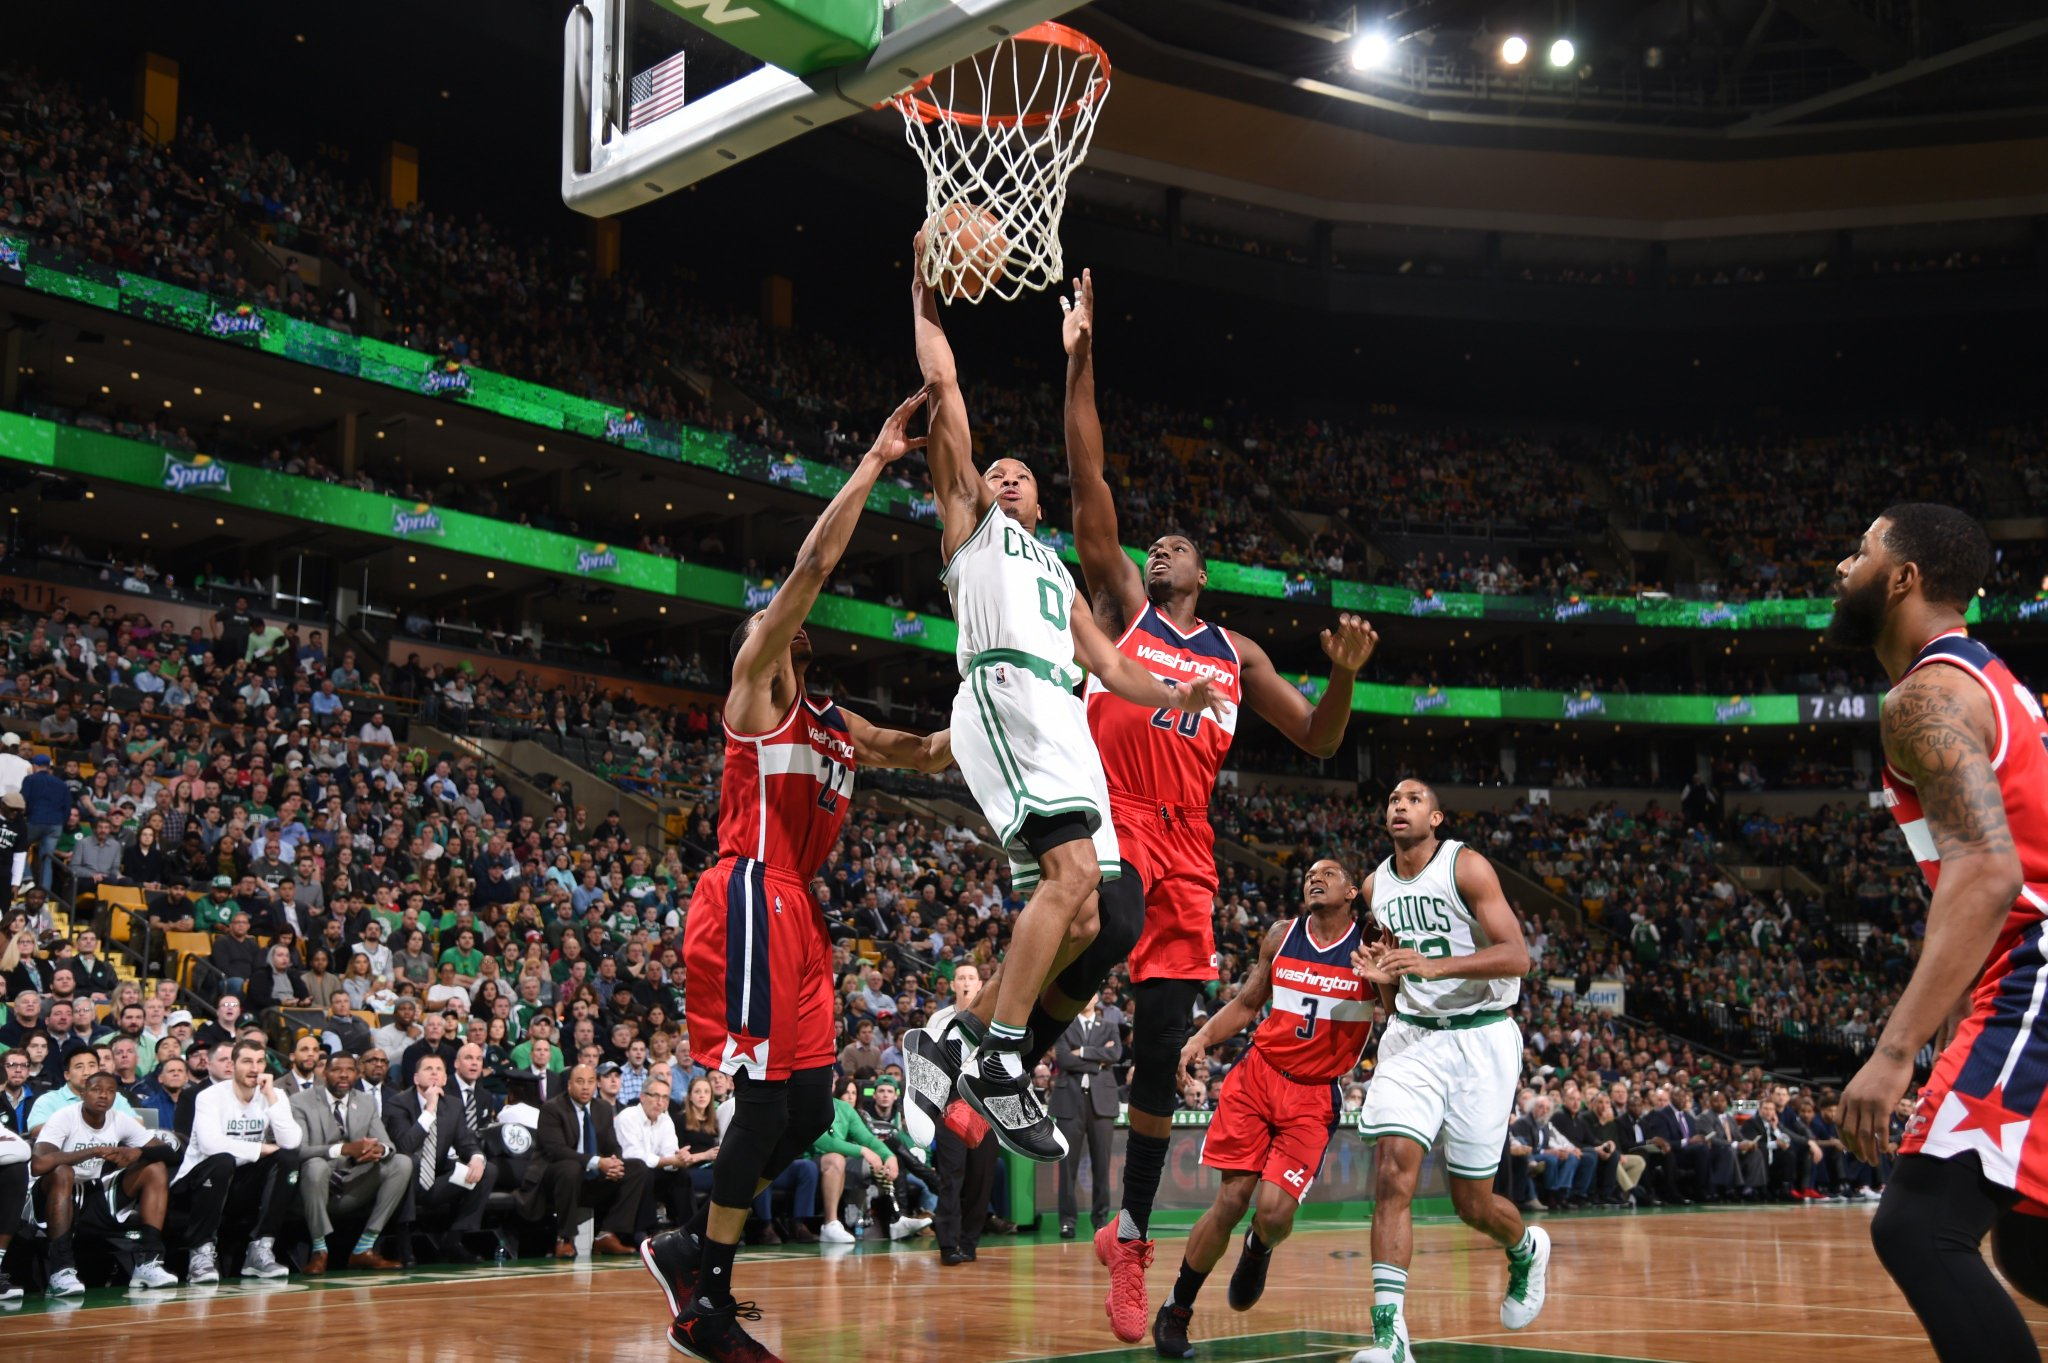 Huge playoff seeding implications in this one.  HALFTIME - #Celtics : 58 @WashWizards: 47  Beal - 15p Bradley - 14p https://t.co/ZraRklF2oI